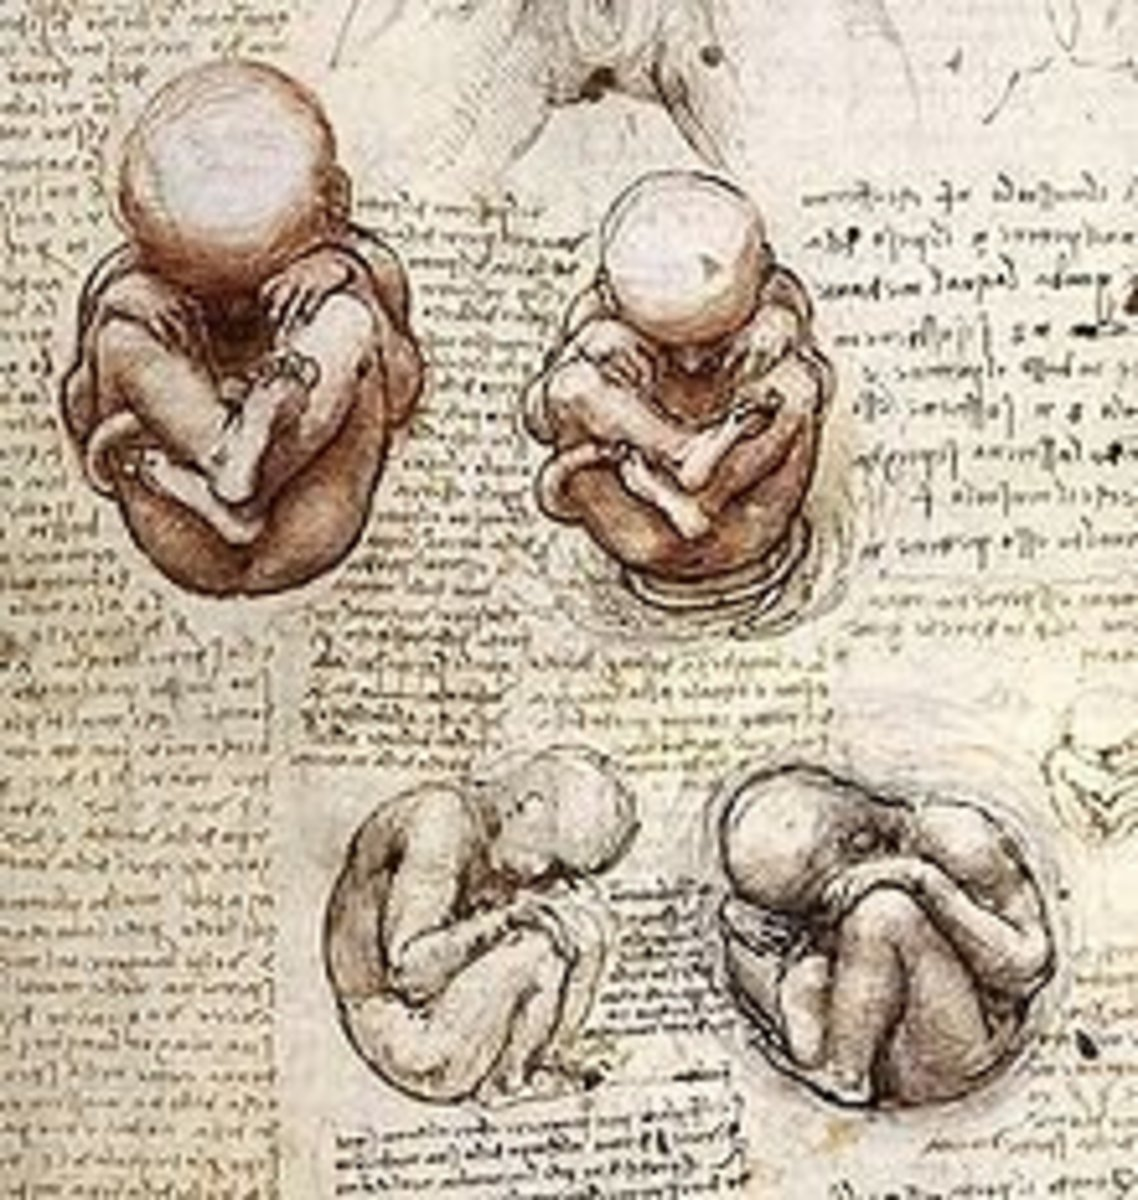 Obstetrics. He had detailed drawings of babies in all stages in utero along with the womb.